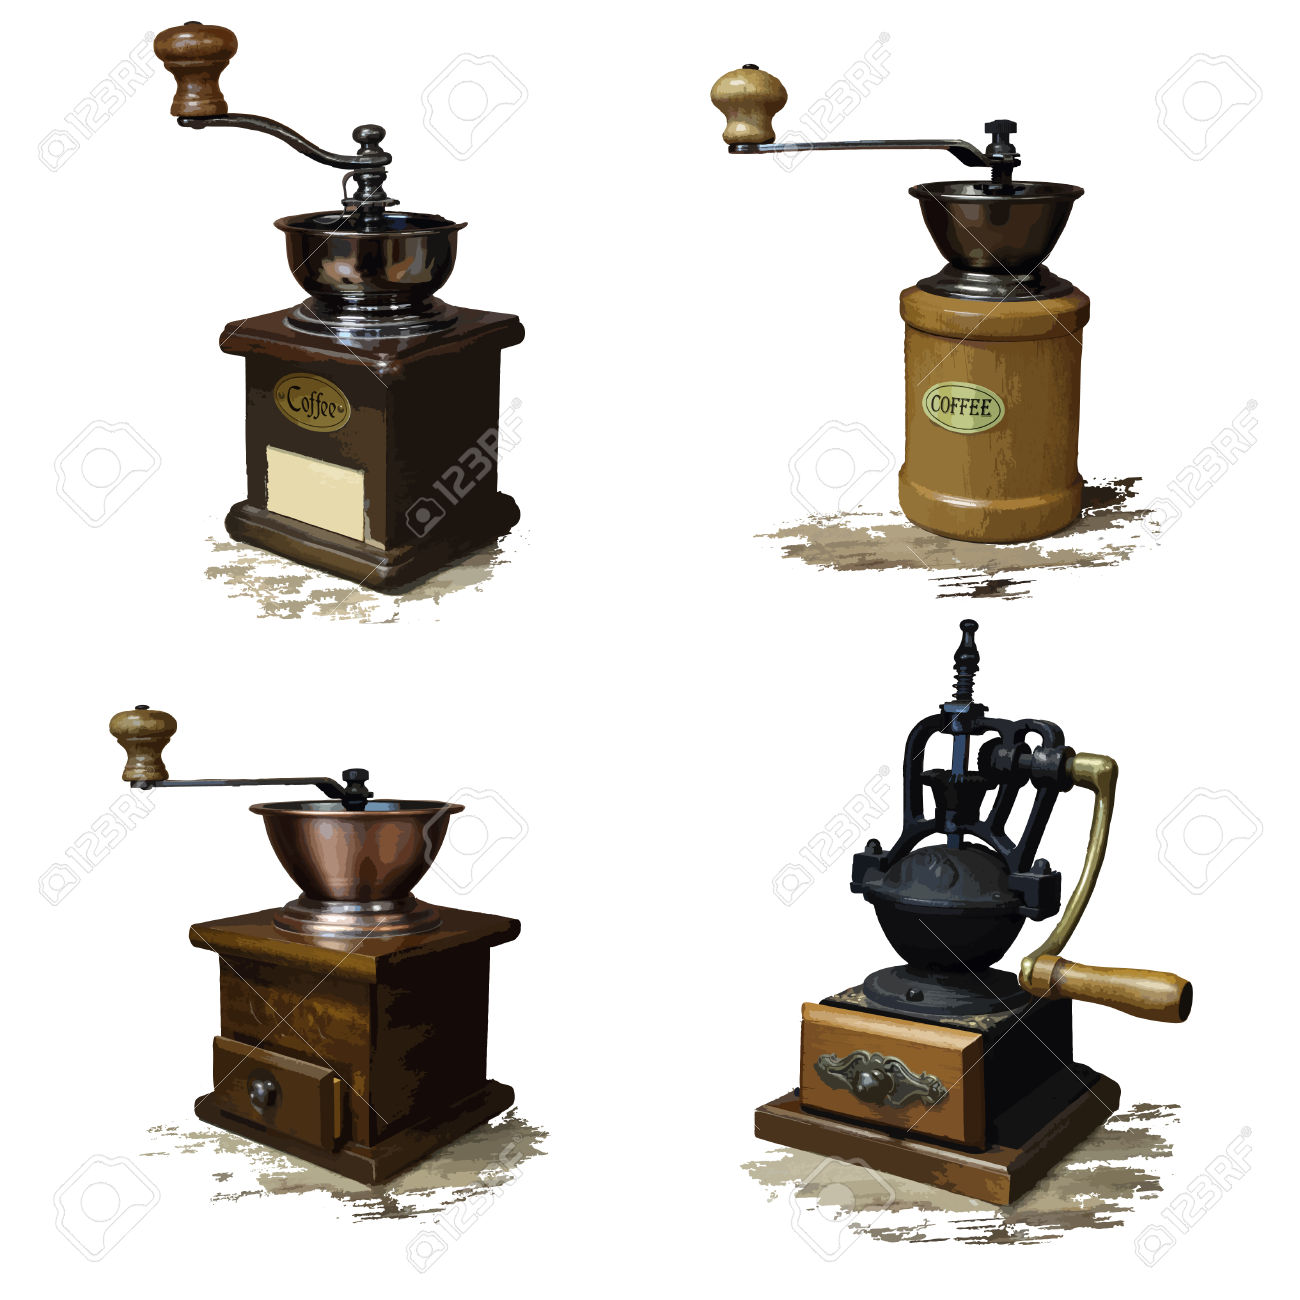 Vintage Style Of Old Coffee Grinder Vector Icons Royalty Free.